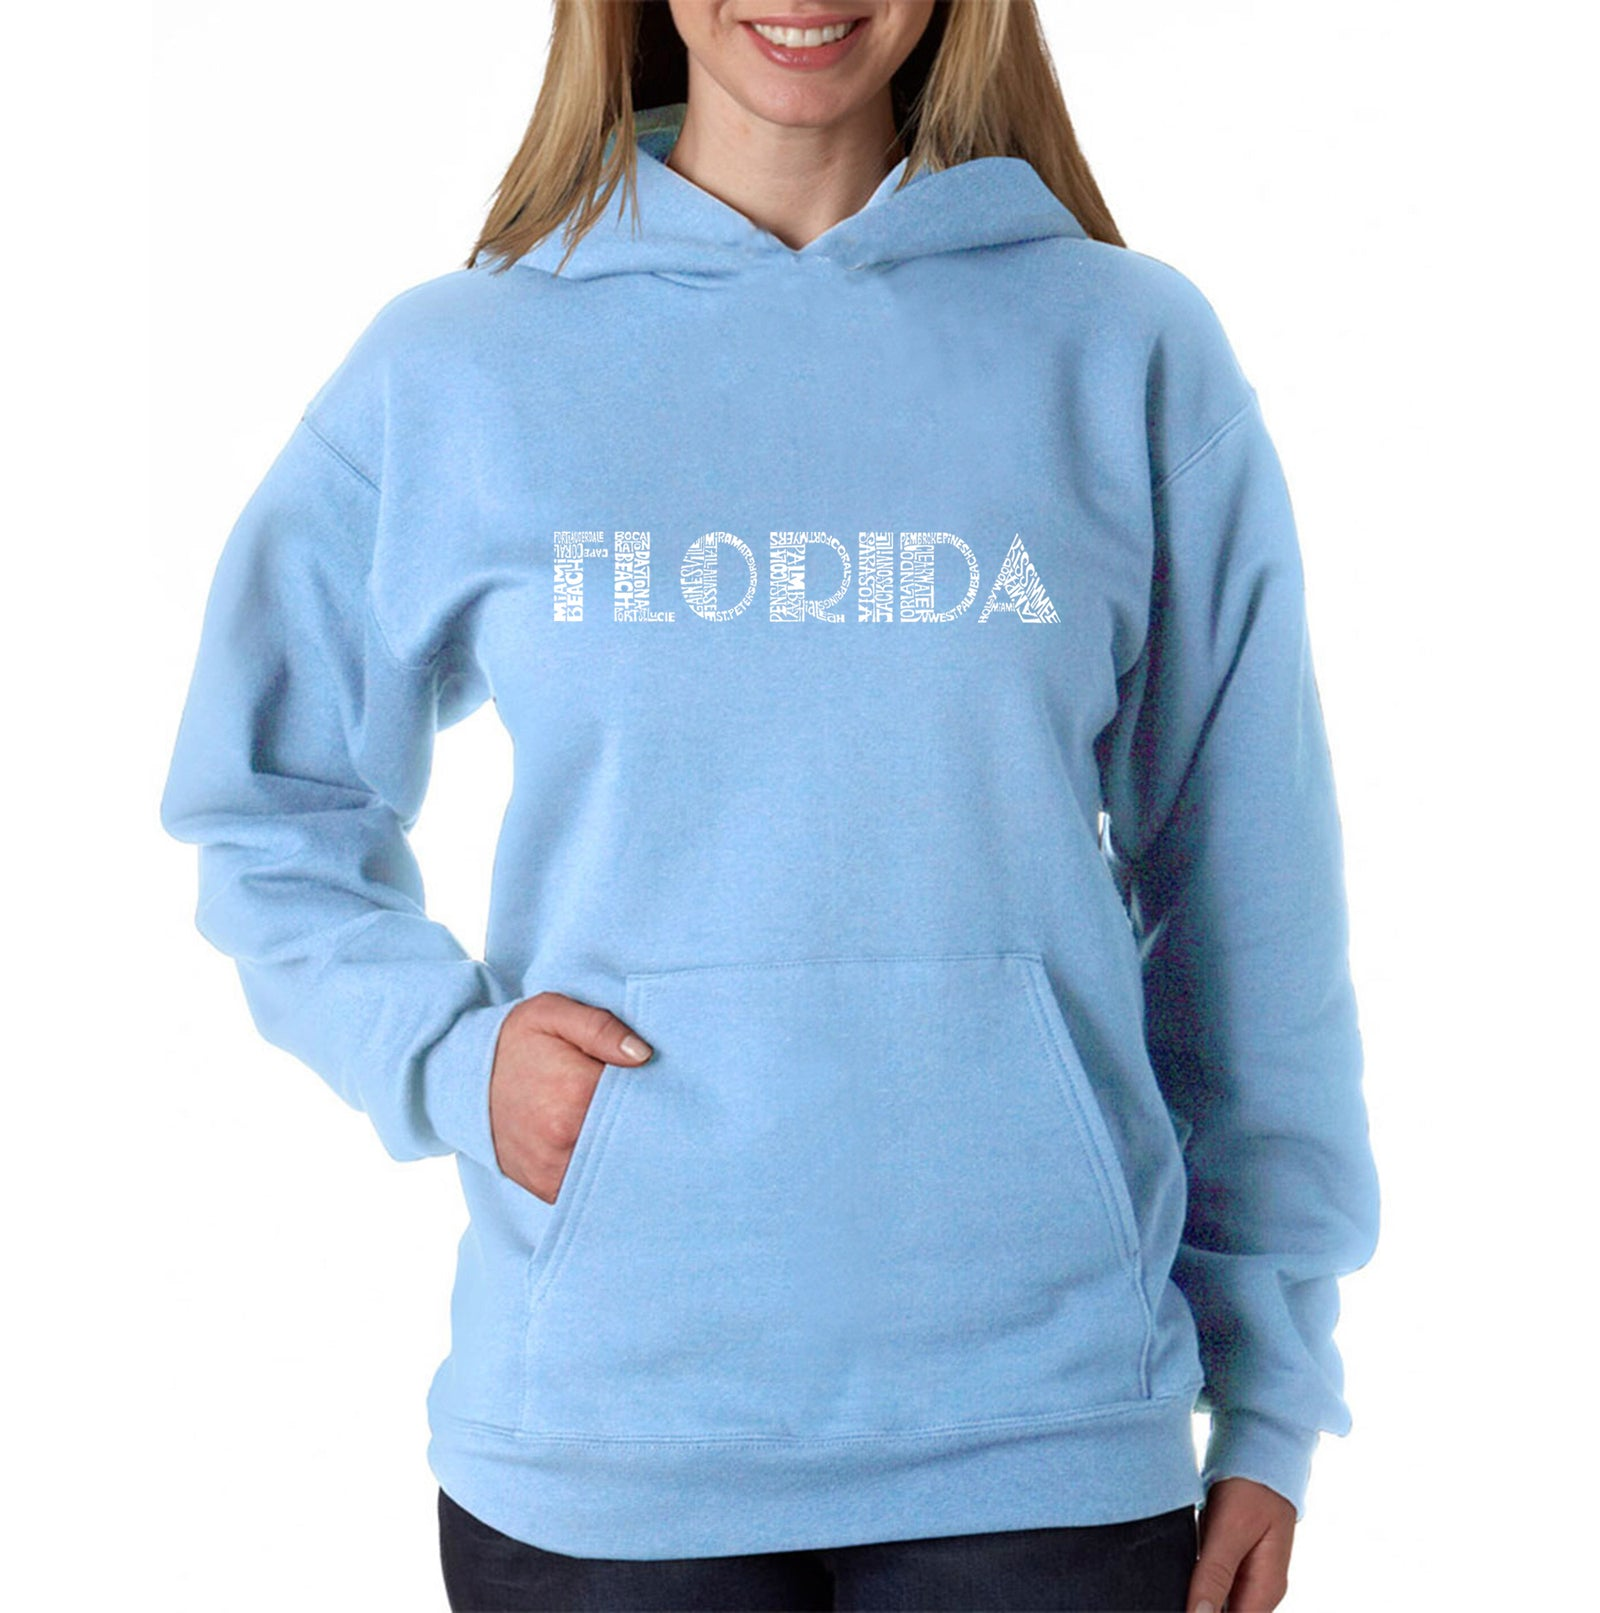 Women's Hooded Sweatshirt -POPULAR CITIES IN FLORIDA